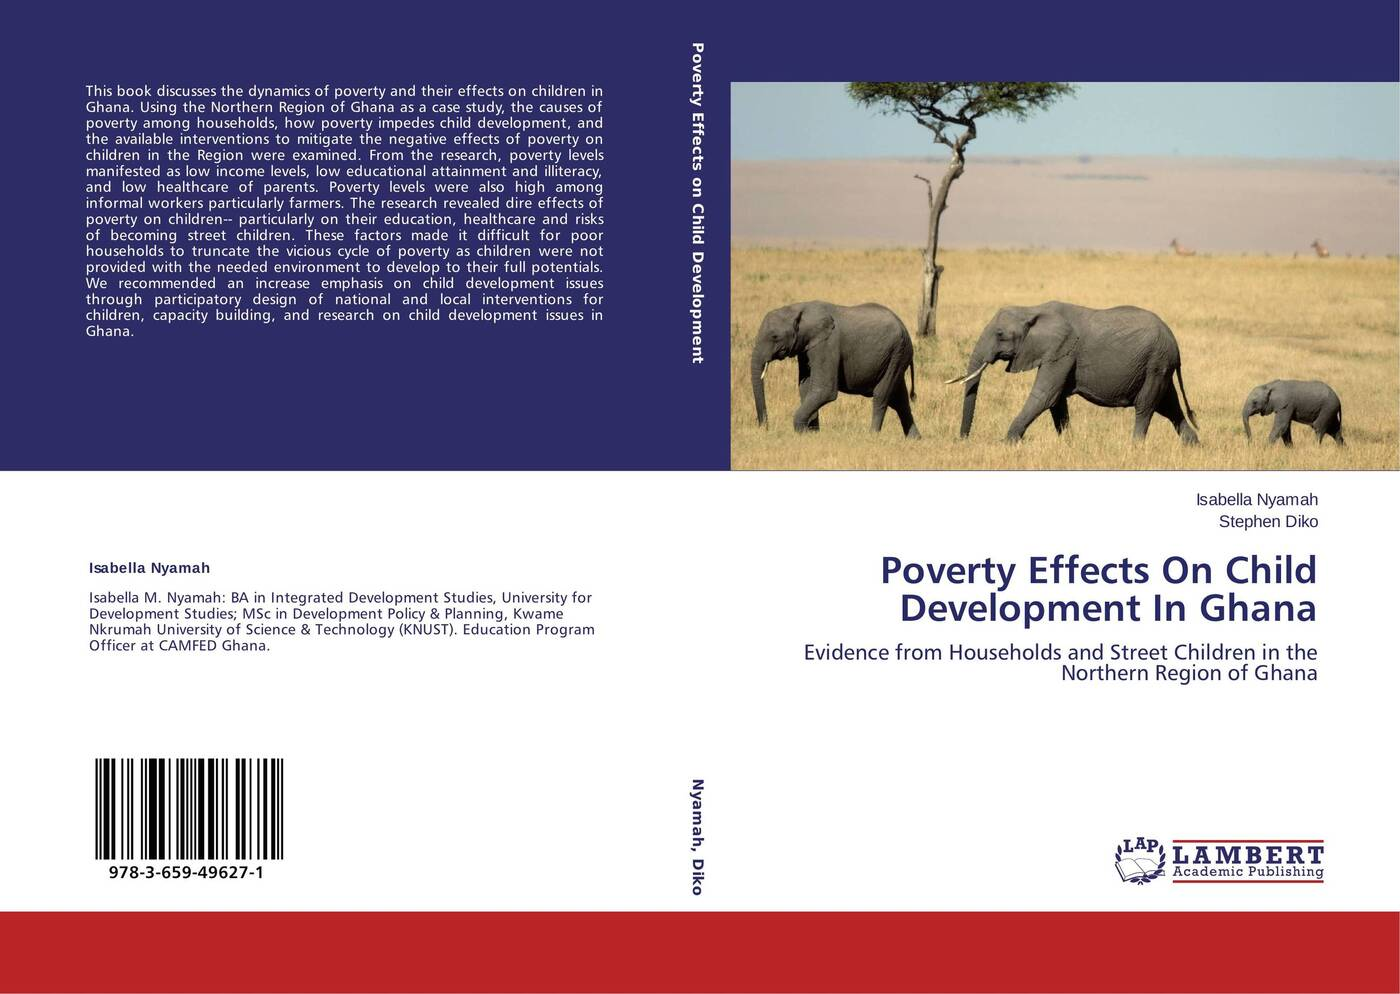 Isabella Nyamah and Stephen Diko Poverty Effects On Child Development In Ghana persistence of poverty in rural ghana